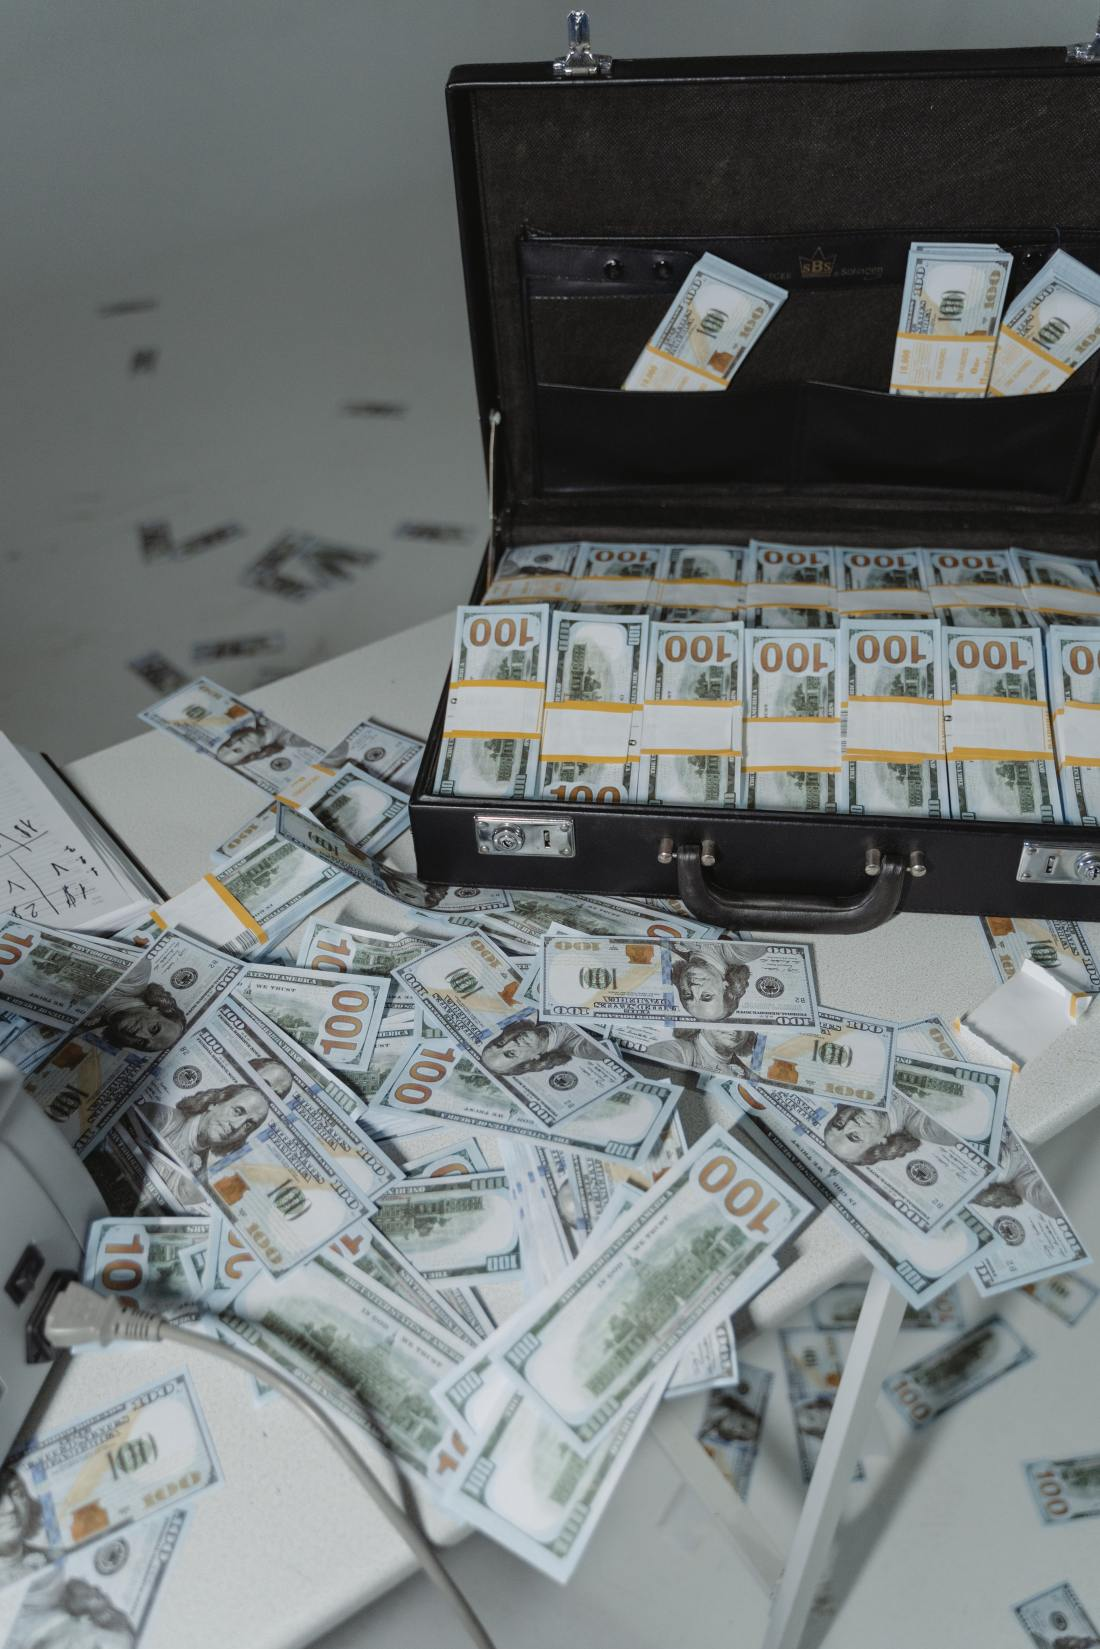 Cash sloppily thrown about suitcase